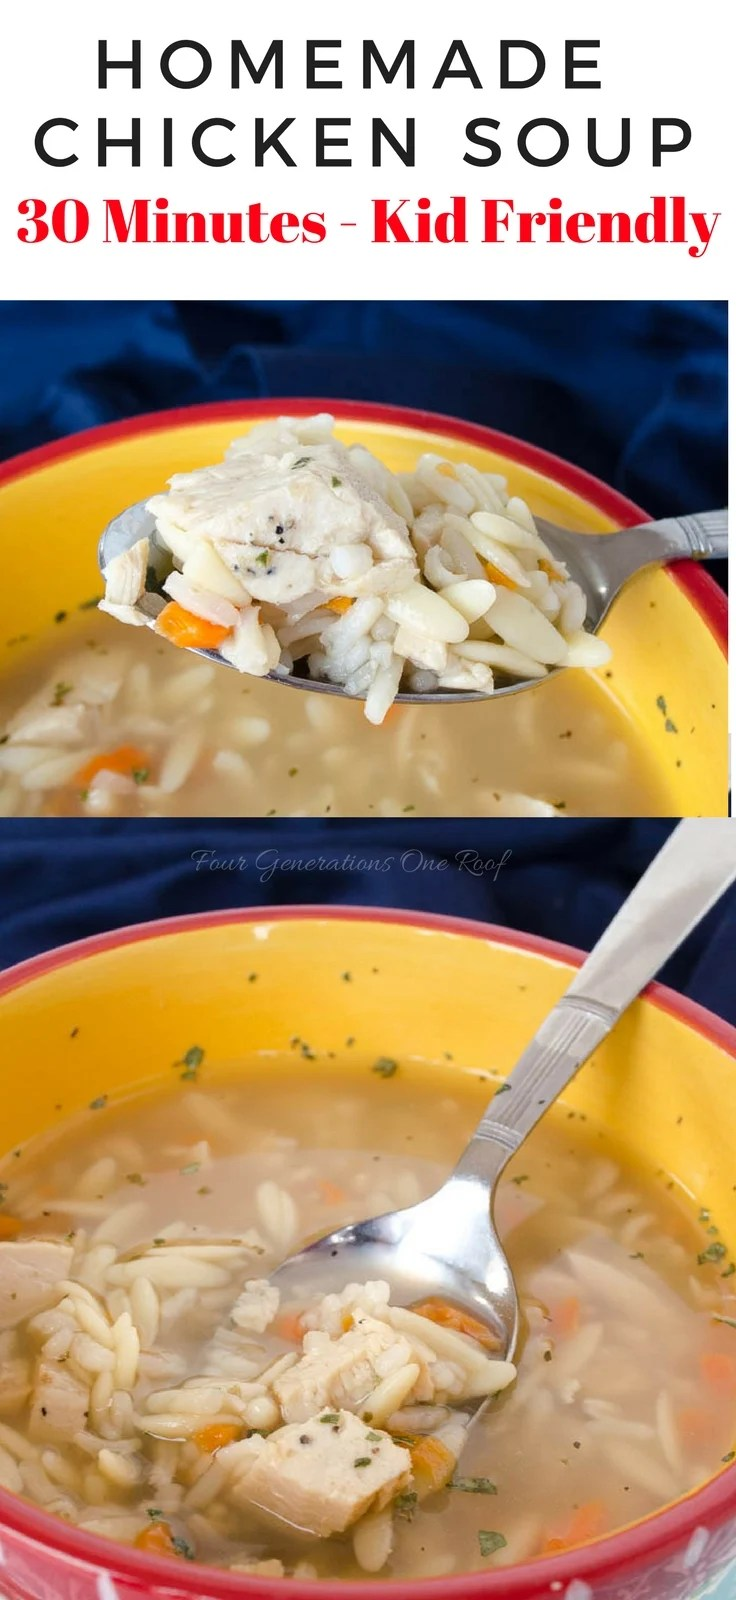 Kid 30 Minute Homemade Chicken Soup